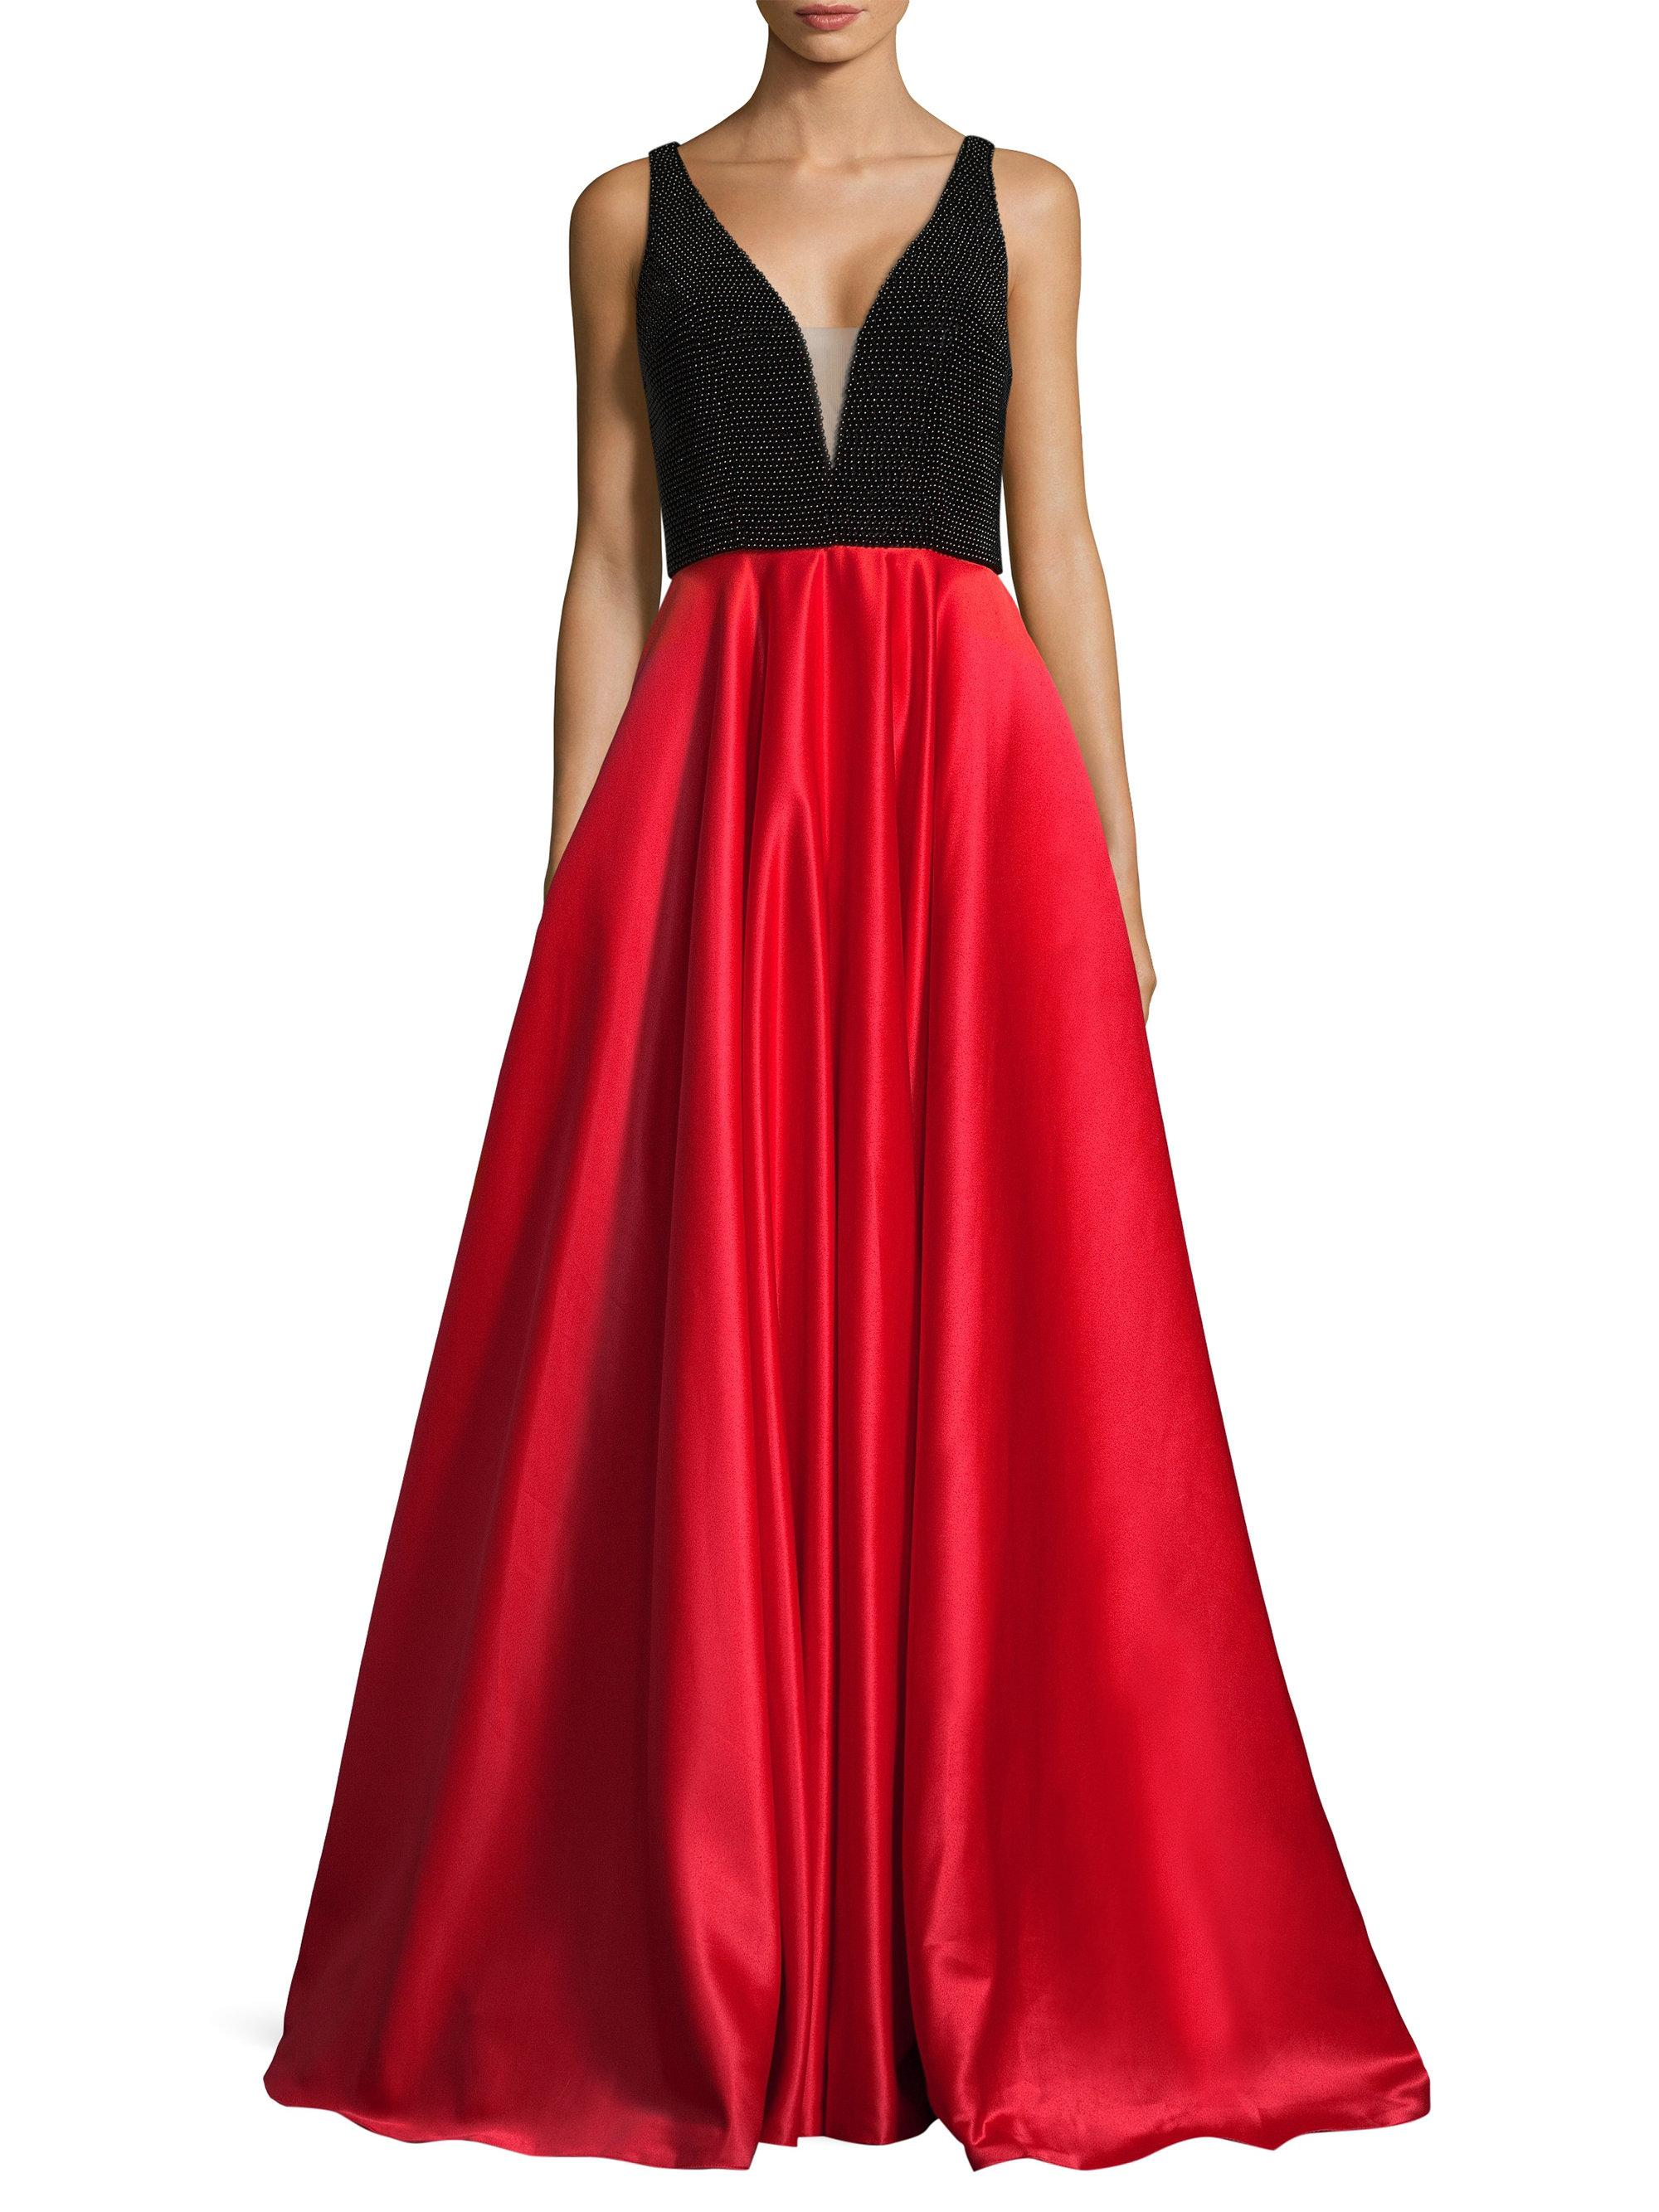 e1c3f020db3 Basix Black Label Pearl Top A-line Gown in Red - Lyst